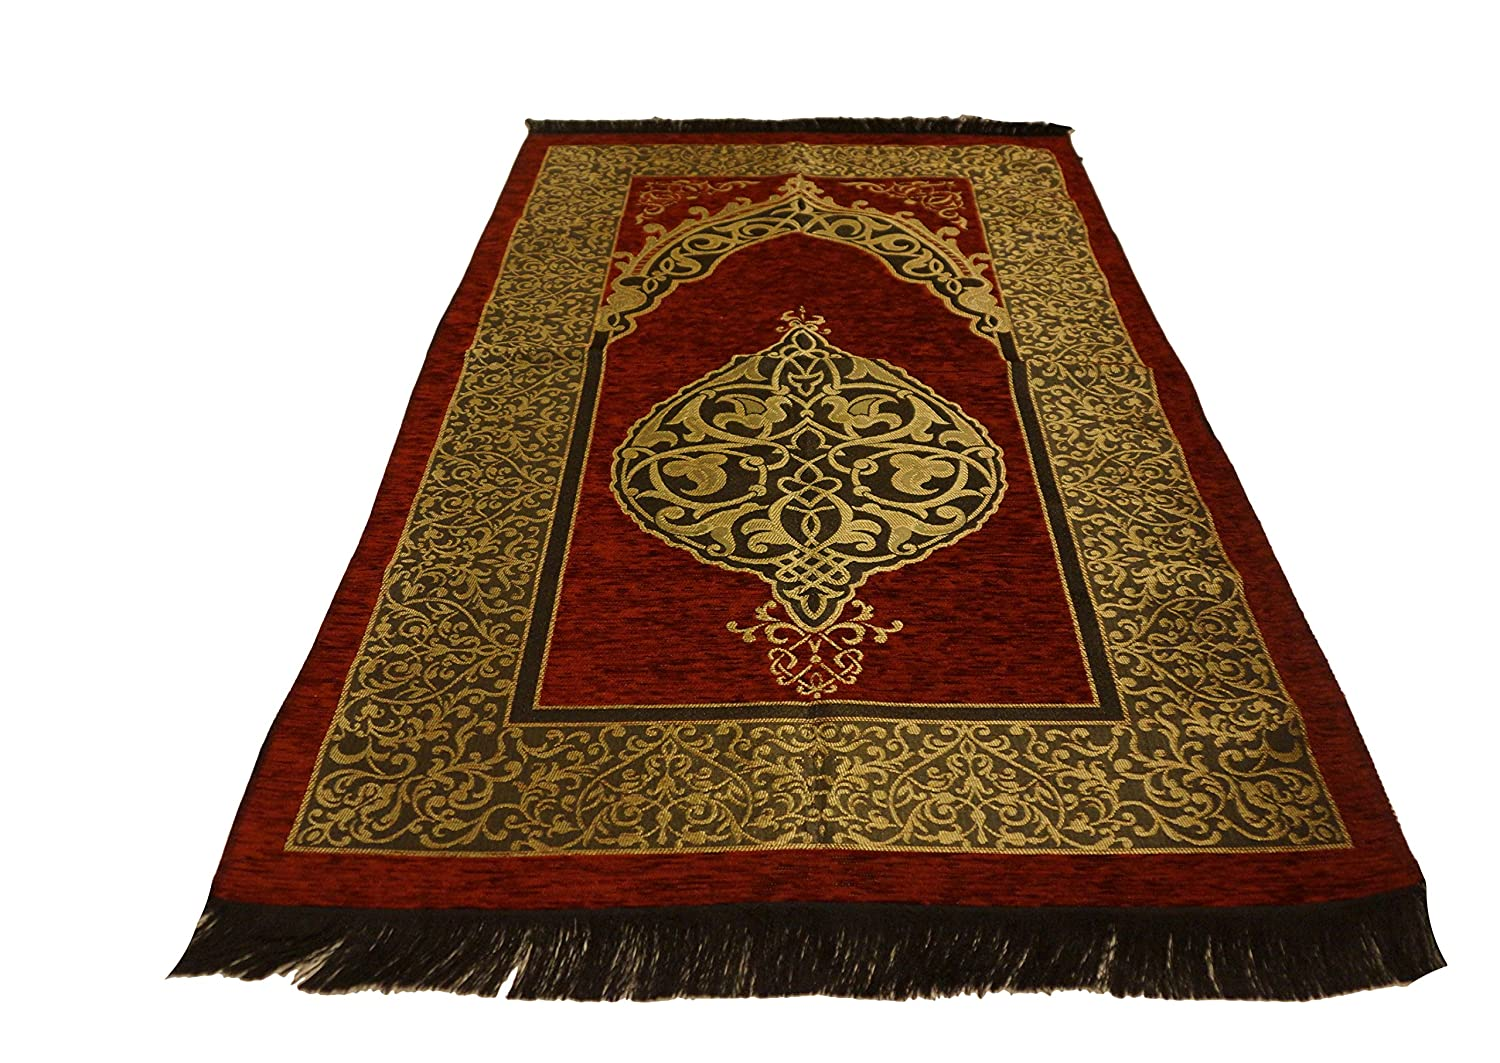 Sparkle Trade Luxury Islamic Prayer Rug Turkish Ottoman Stamp Sajadah Thin Prayer Rug Muslim Gift Eid Ramadan (Beige)